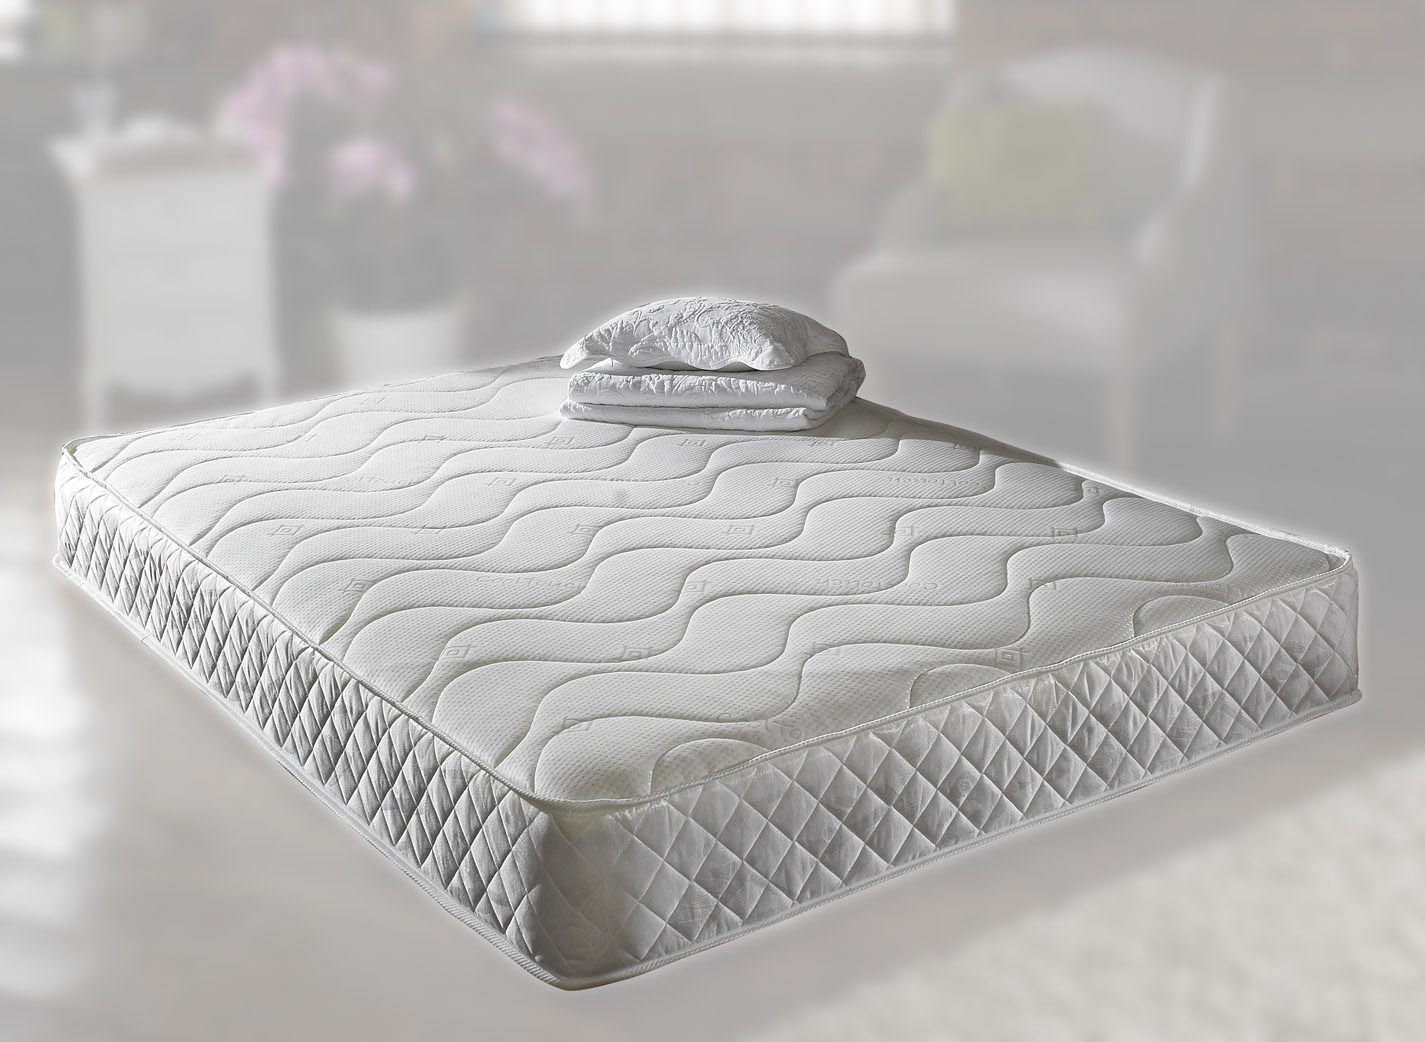 4ft 6in Double Pearl Memory Foam Mattress In White - 25cm deep